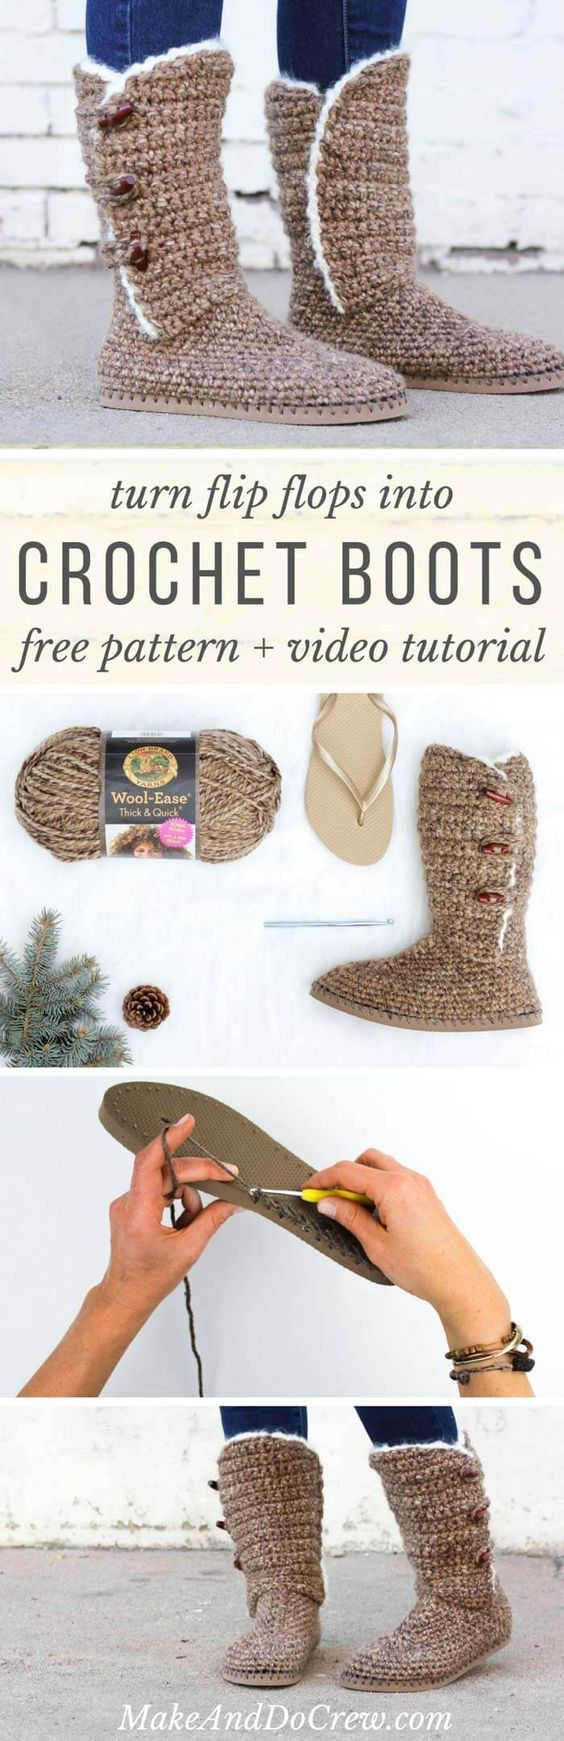 My Hobby Is Crochet: Flip Flop Crochet Slippers Free Pattern Video Tuto...